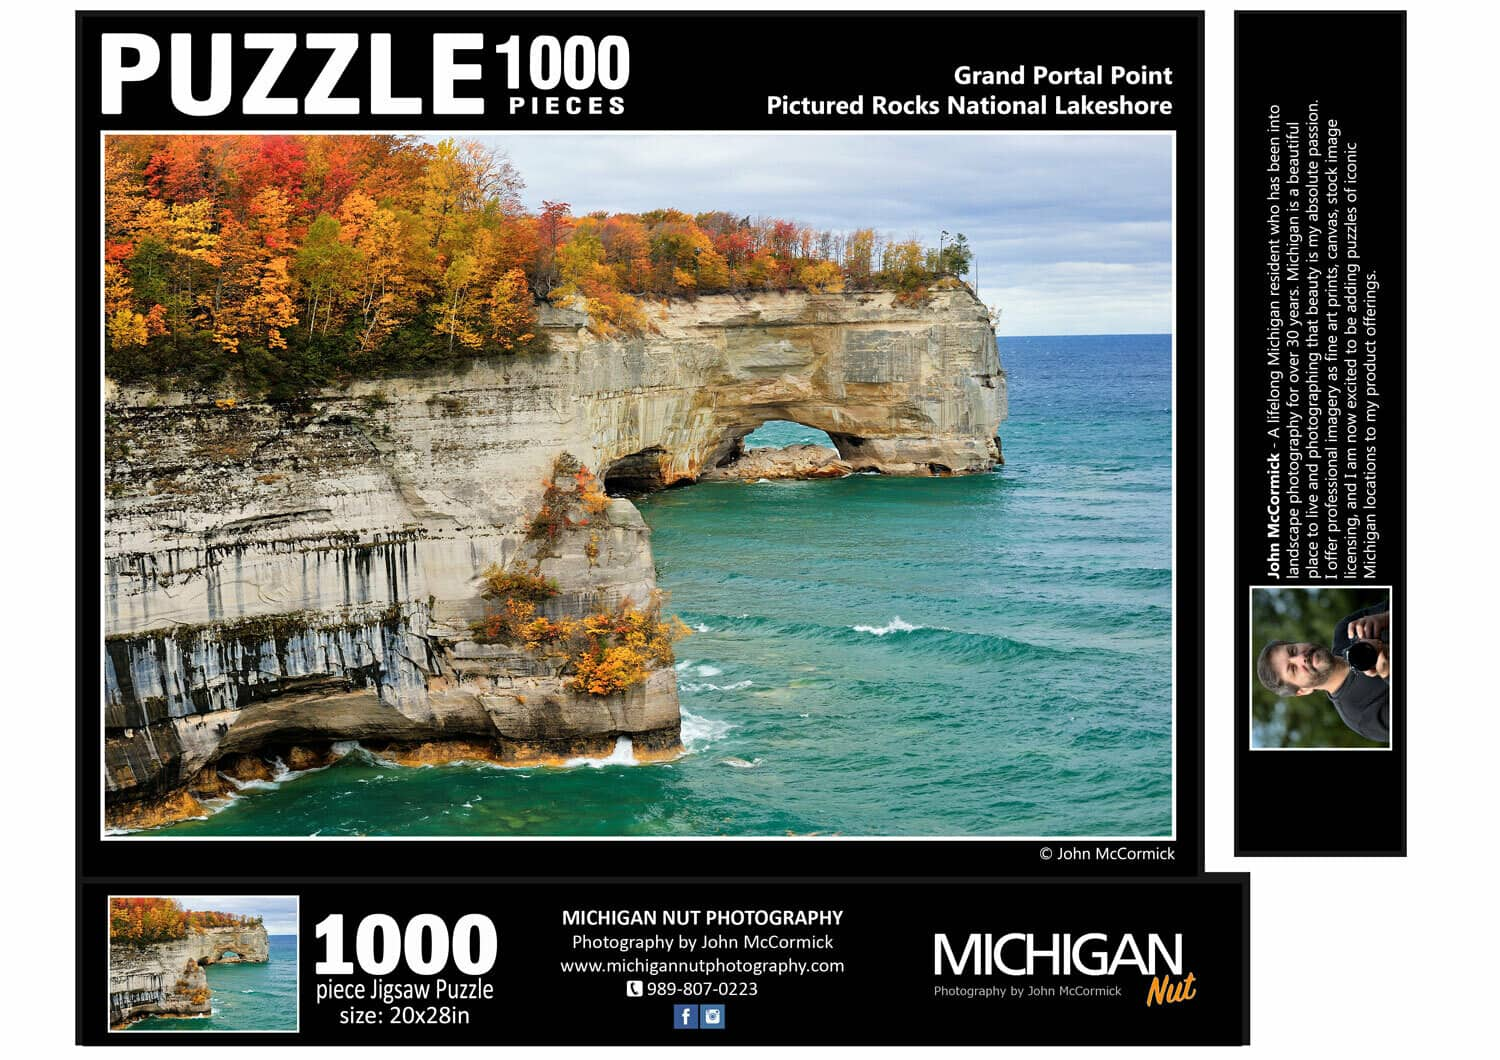 Picture Rocks Puzzle - an ultimate michigan gift idea